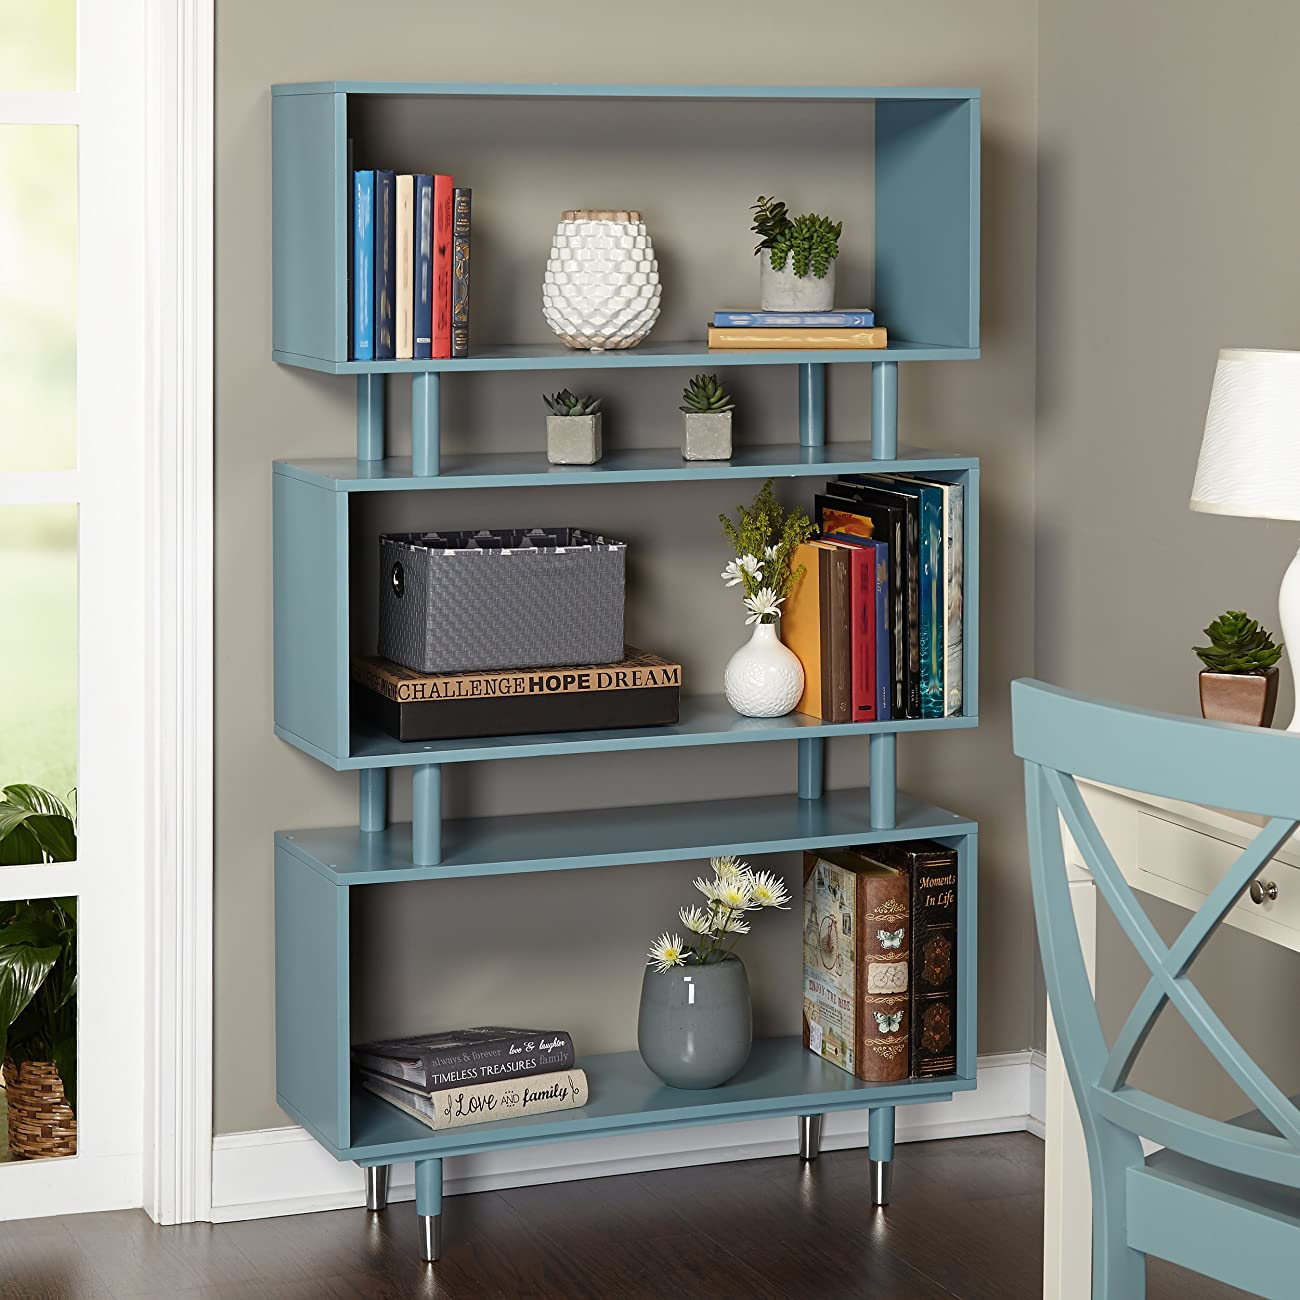 Mid Century Modern Wooden Accent Bookshelf in Blue Finish with 3 Shelves and Silver Legs - Includes Modhaus Living Pen 0